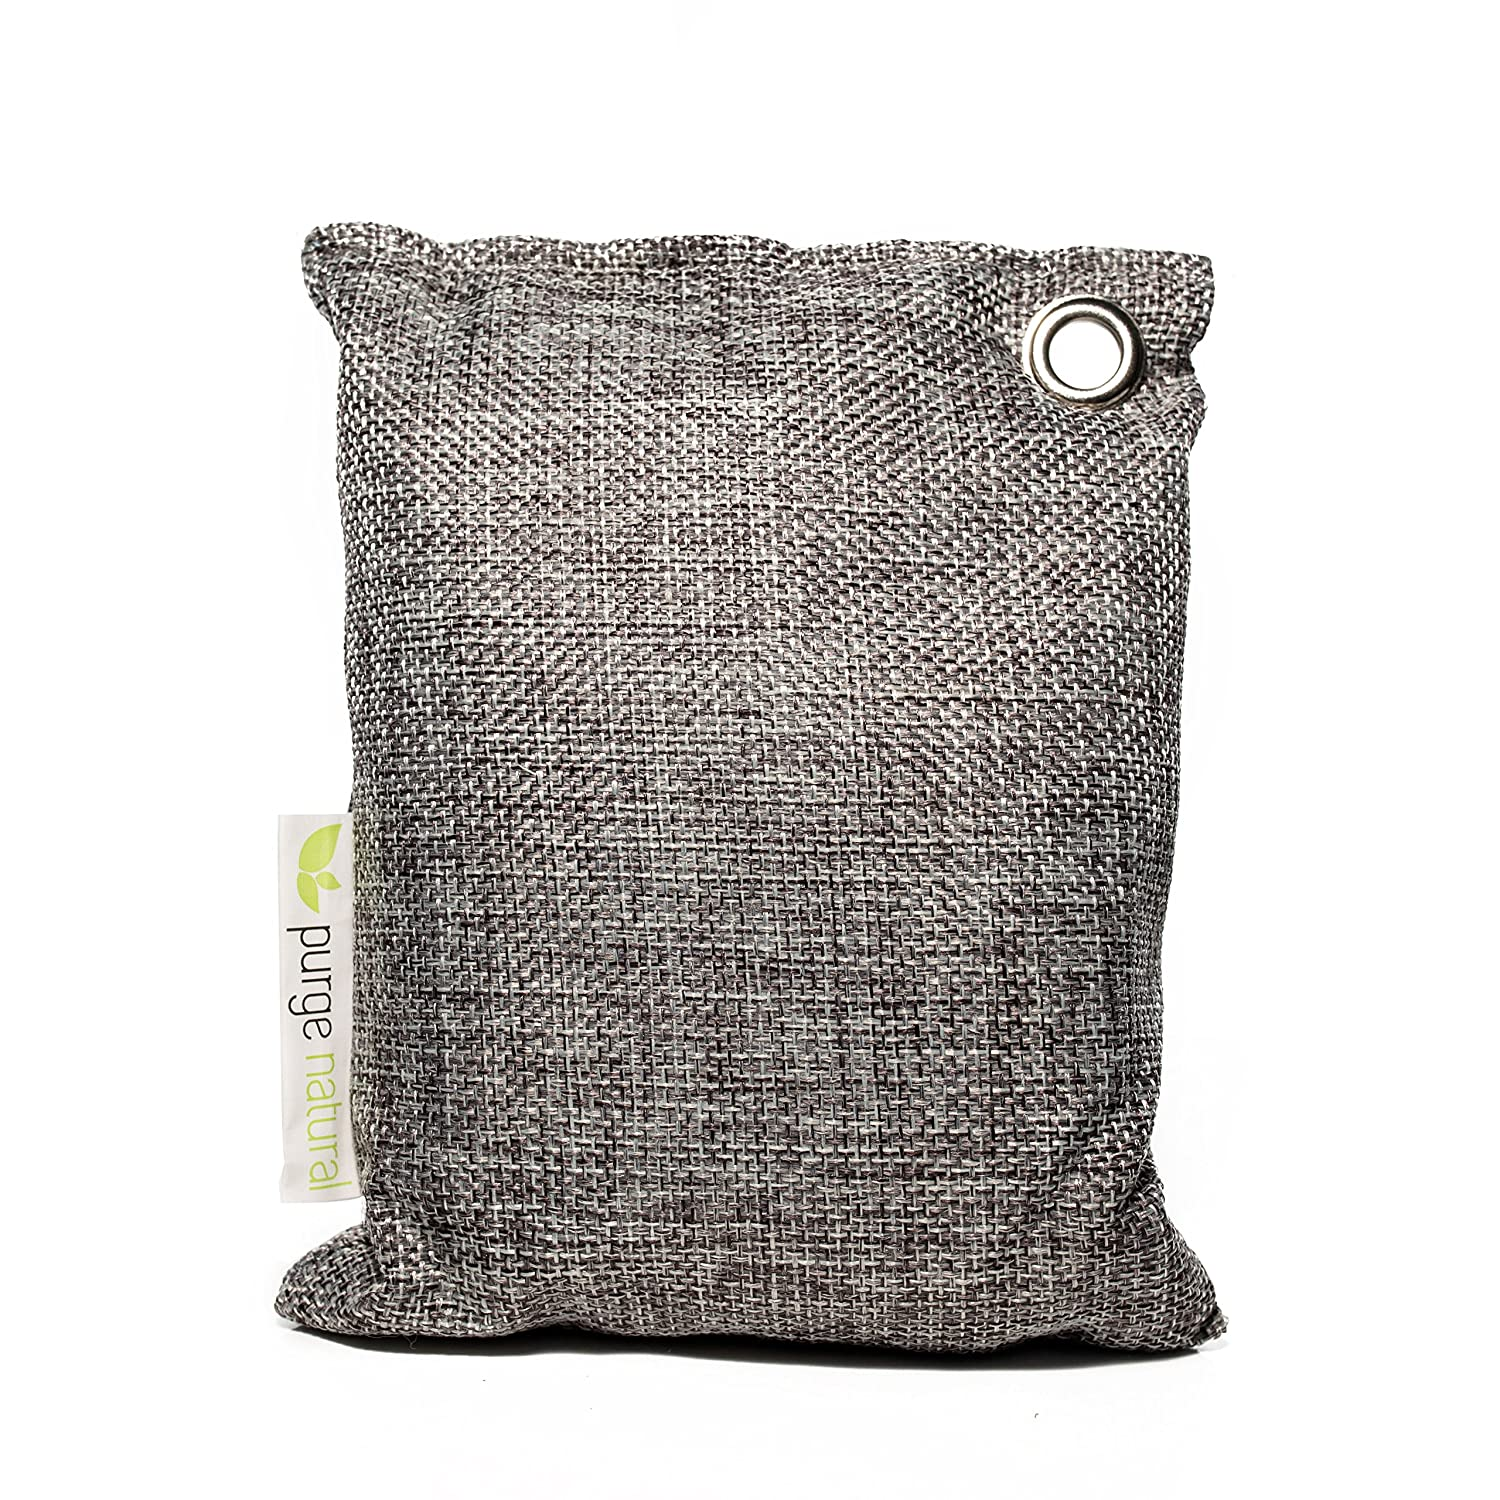 Purge Bag - Activated Carbon Air Purifier and Deodorizer. All Natural and Chemical Free Bags Automatically Absorb, Deodorize and Neutralize Odors and Moisture. Perfect For Rooms, Cars, Refrigerators Purge Natural